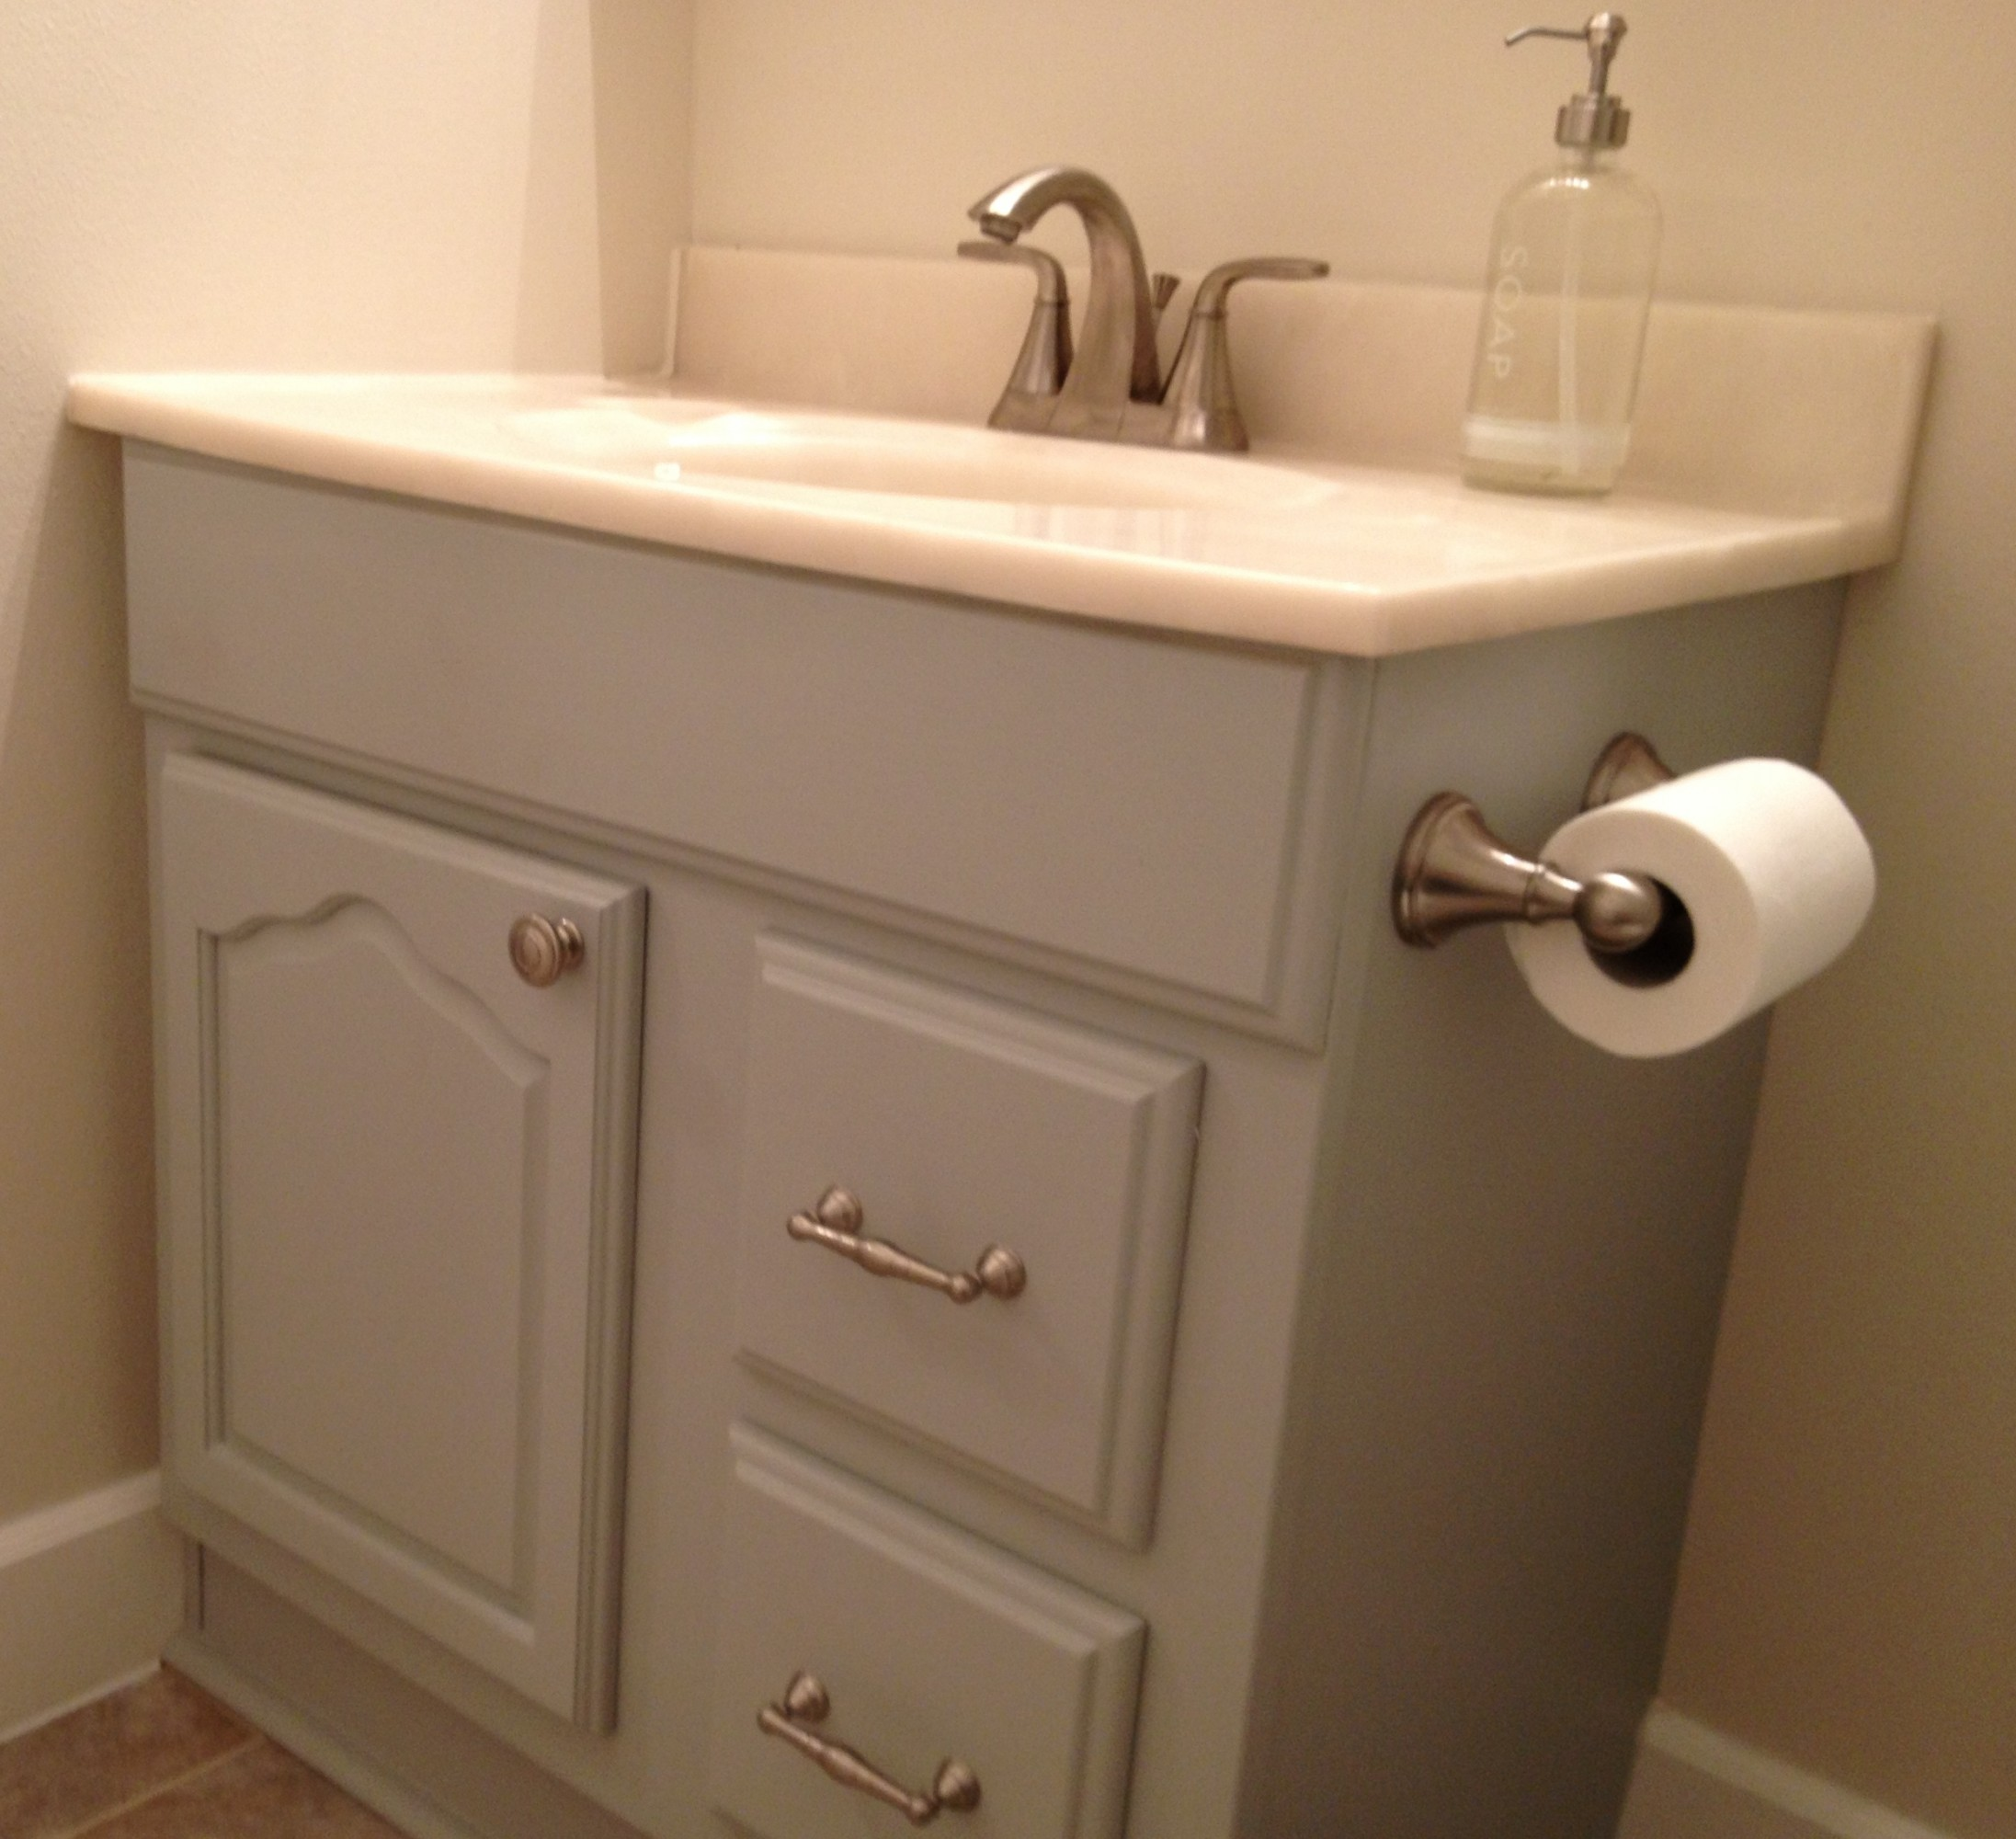 Home depot bathroom designs homesfeed - Home depot design center bathroom ...